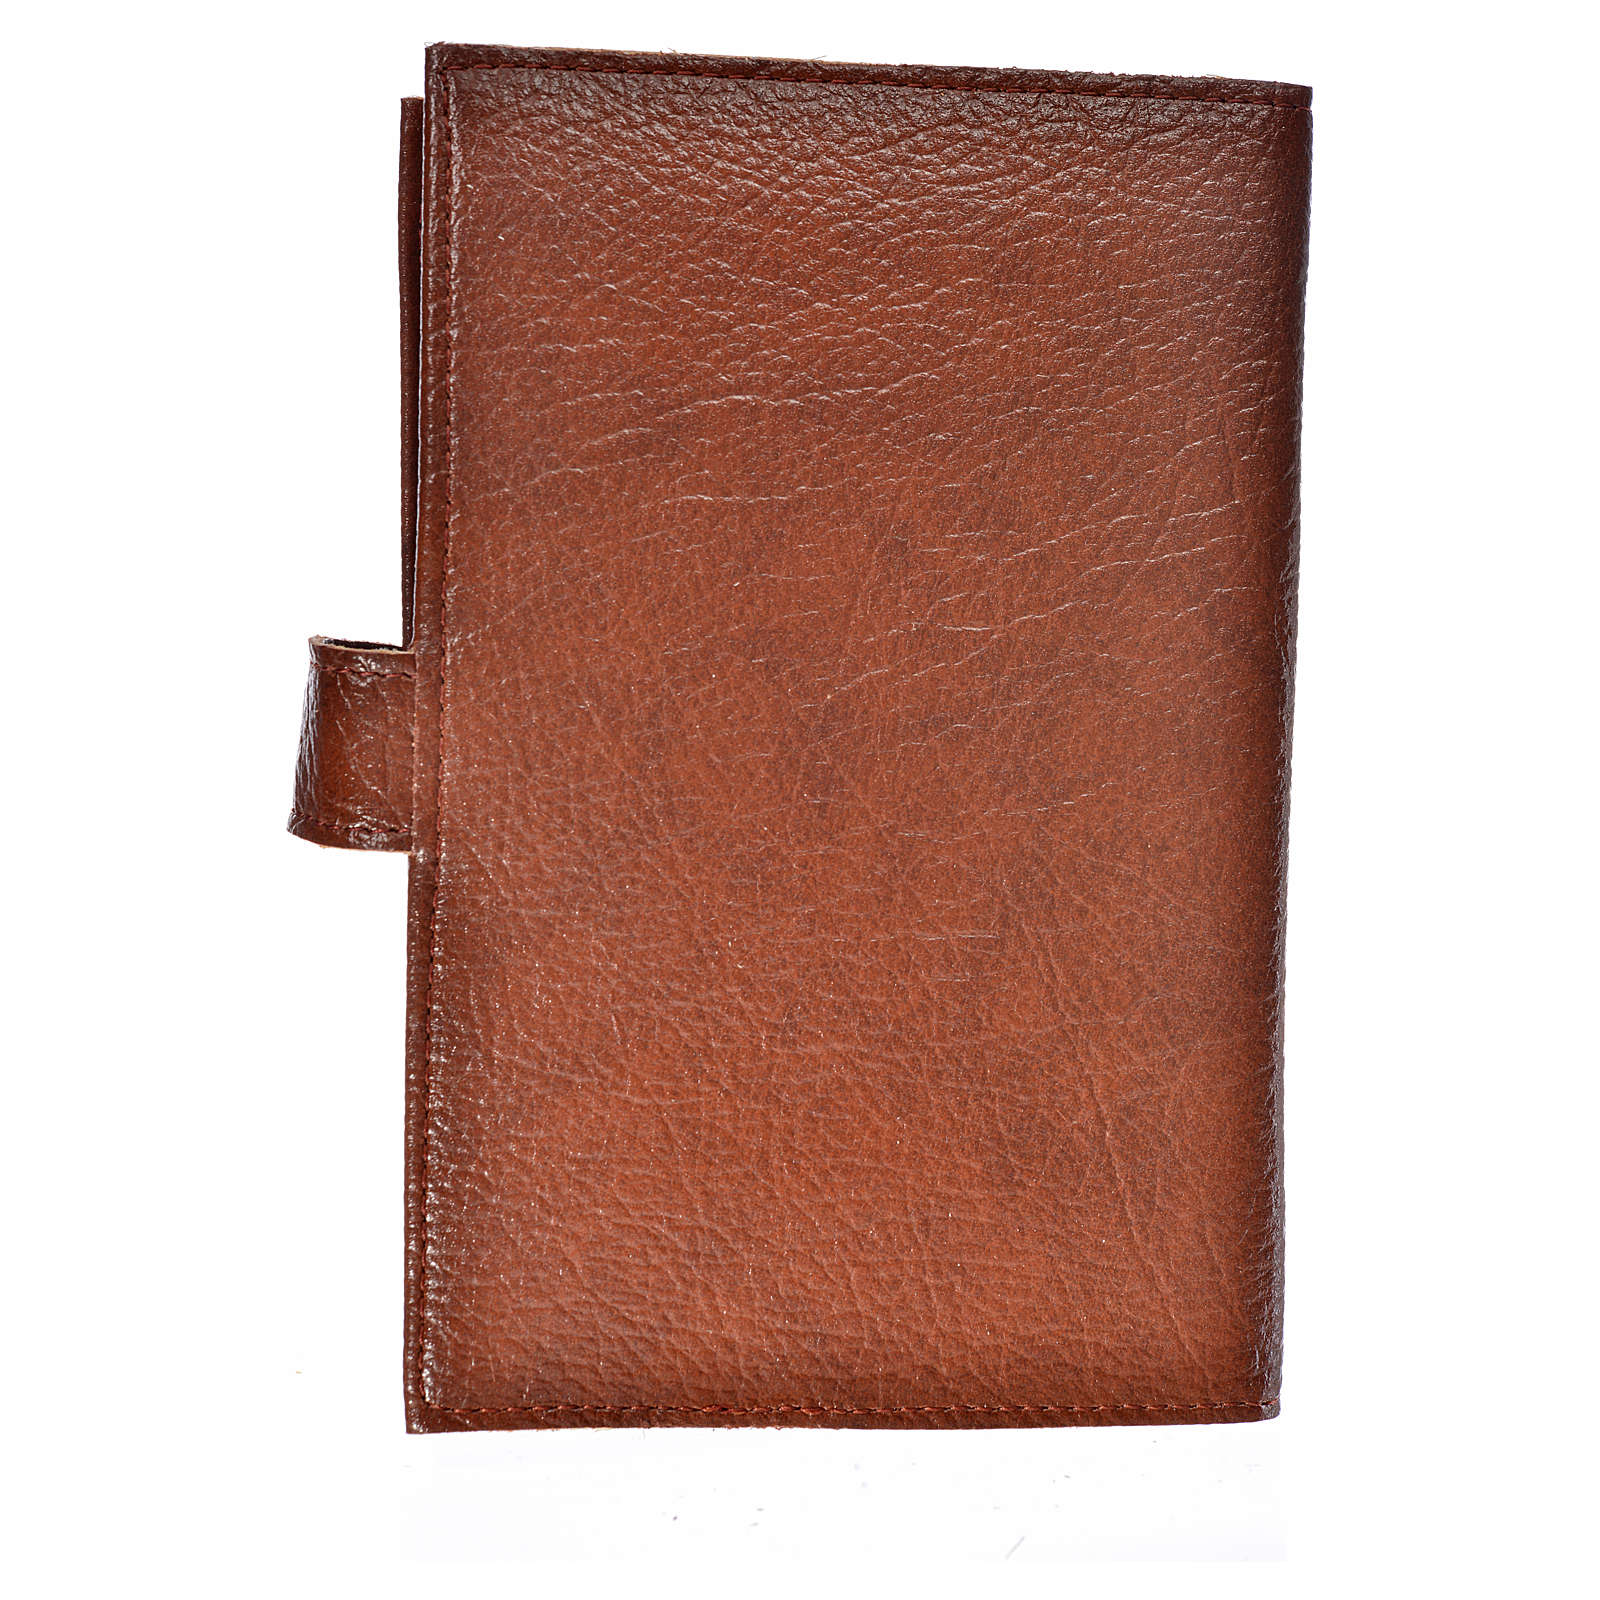 Beige leather imitation cover of the New Jerusalem bible READER EDITION in English with image of Jesus Christ 4